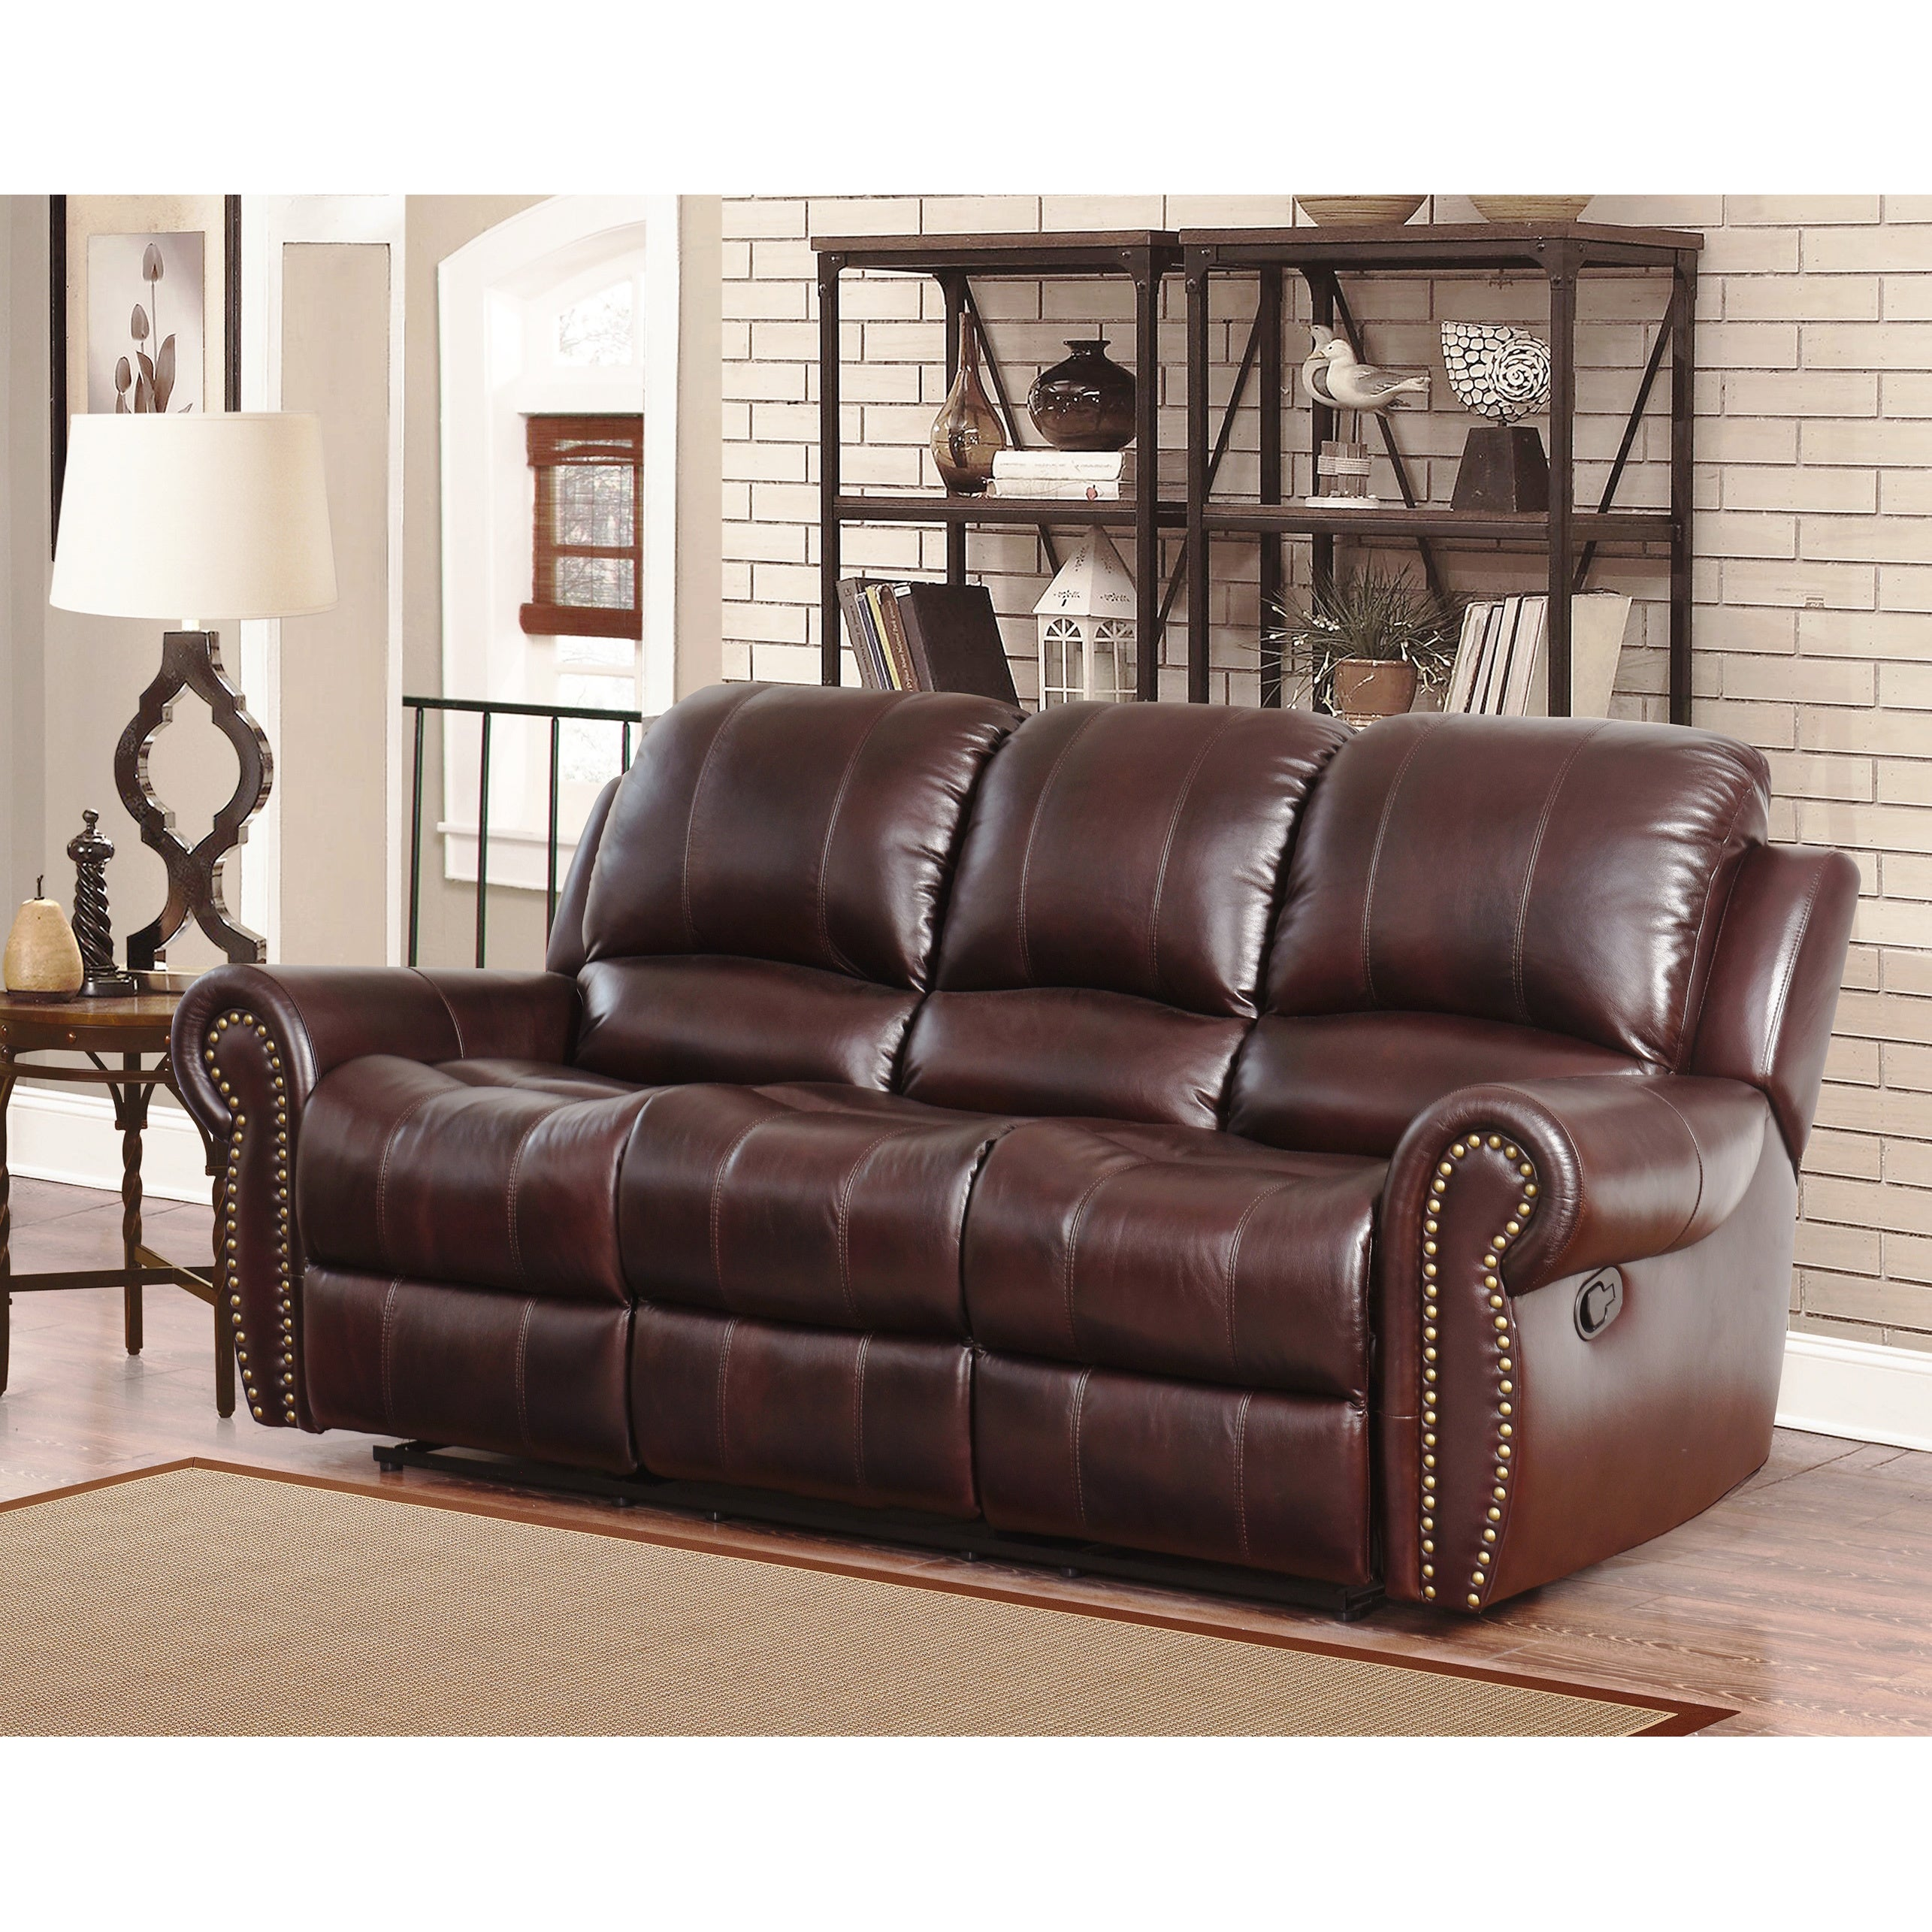 Abbyson Broadway Top Grain Leather Reclining Sofa (Burgun...